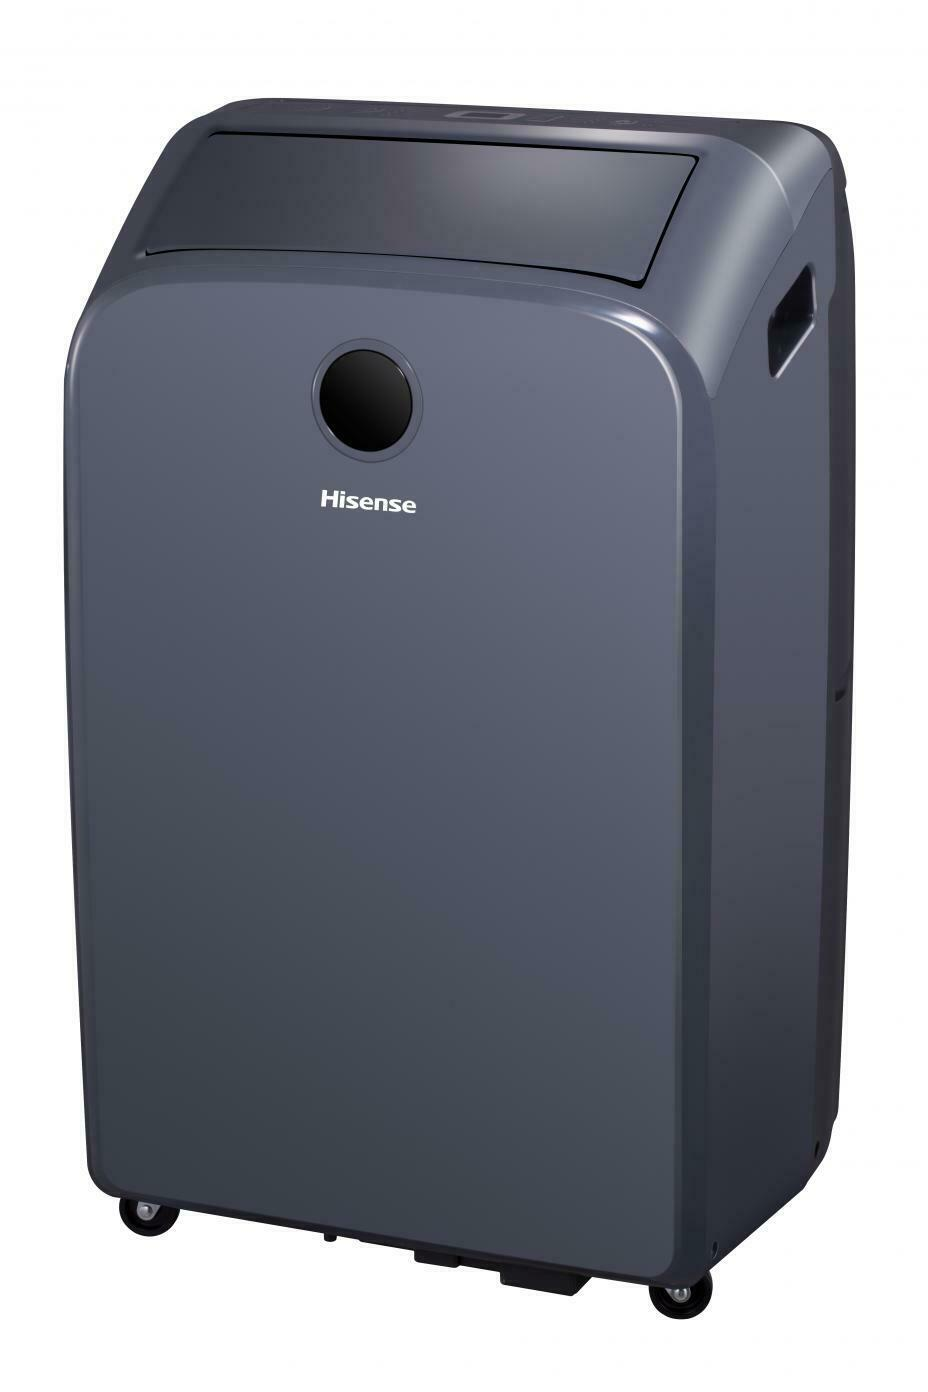 Photo Hisense 12,500 115-Volt Portable Air Conditioner with Heat and Remote